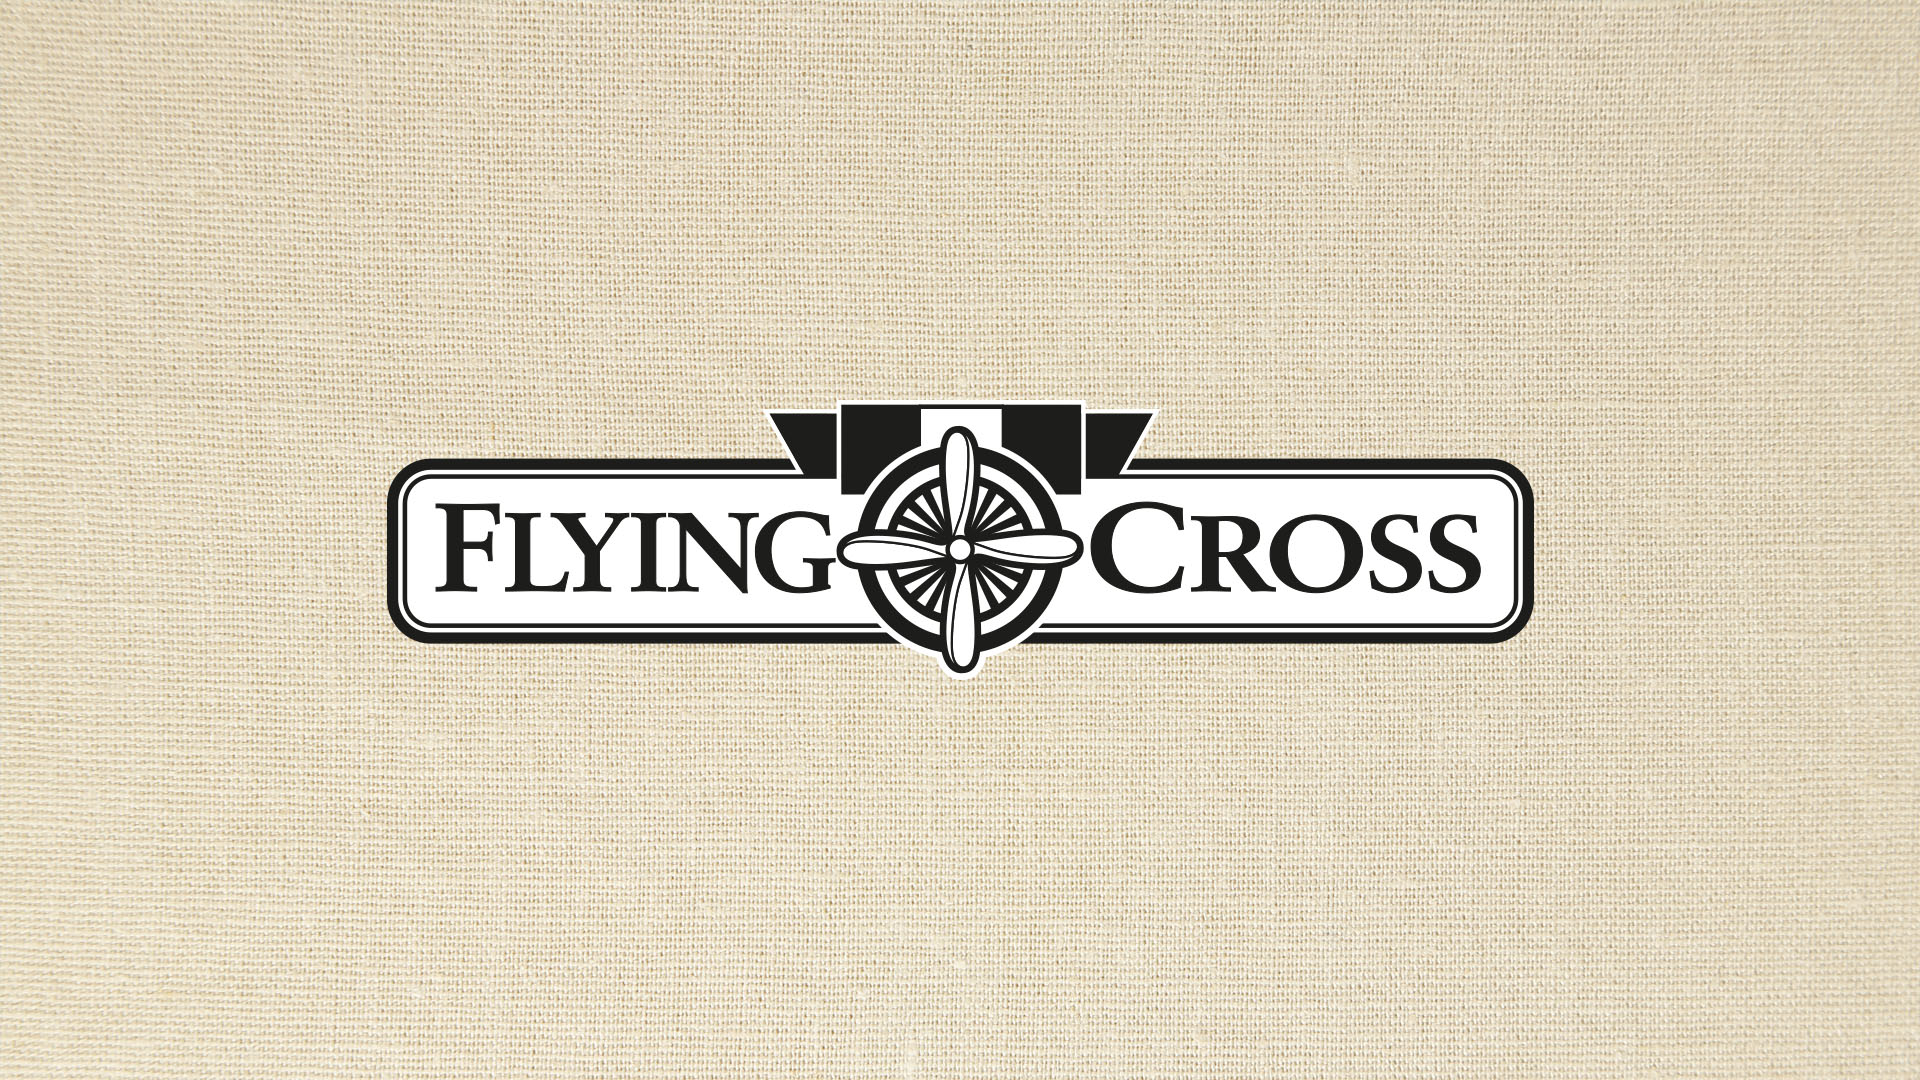 FLYING CROSS BRAND IDENTITY & INSTORE DISPLAY